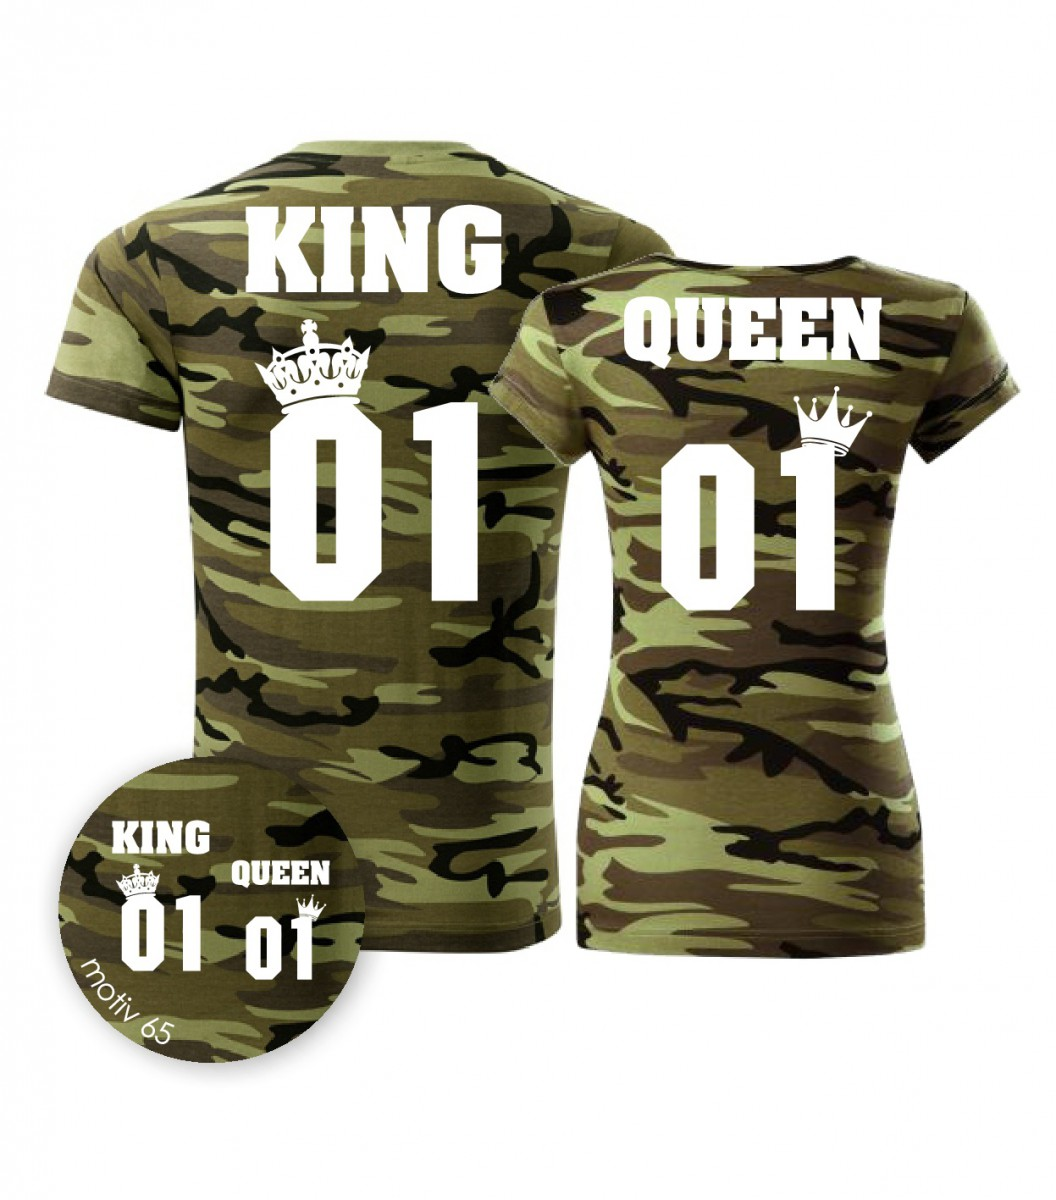 Trička pro páry King and Queen 065 Camouflage Green  0fa9bc611f